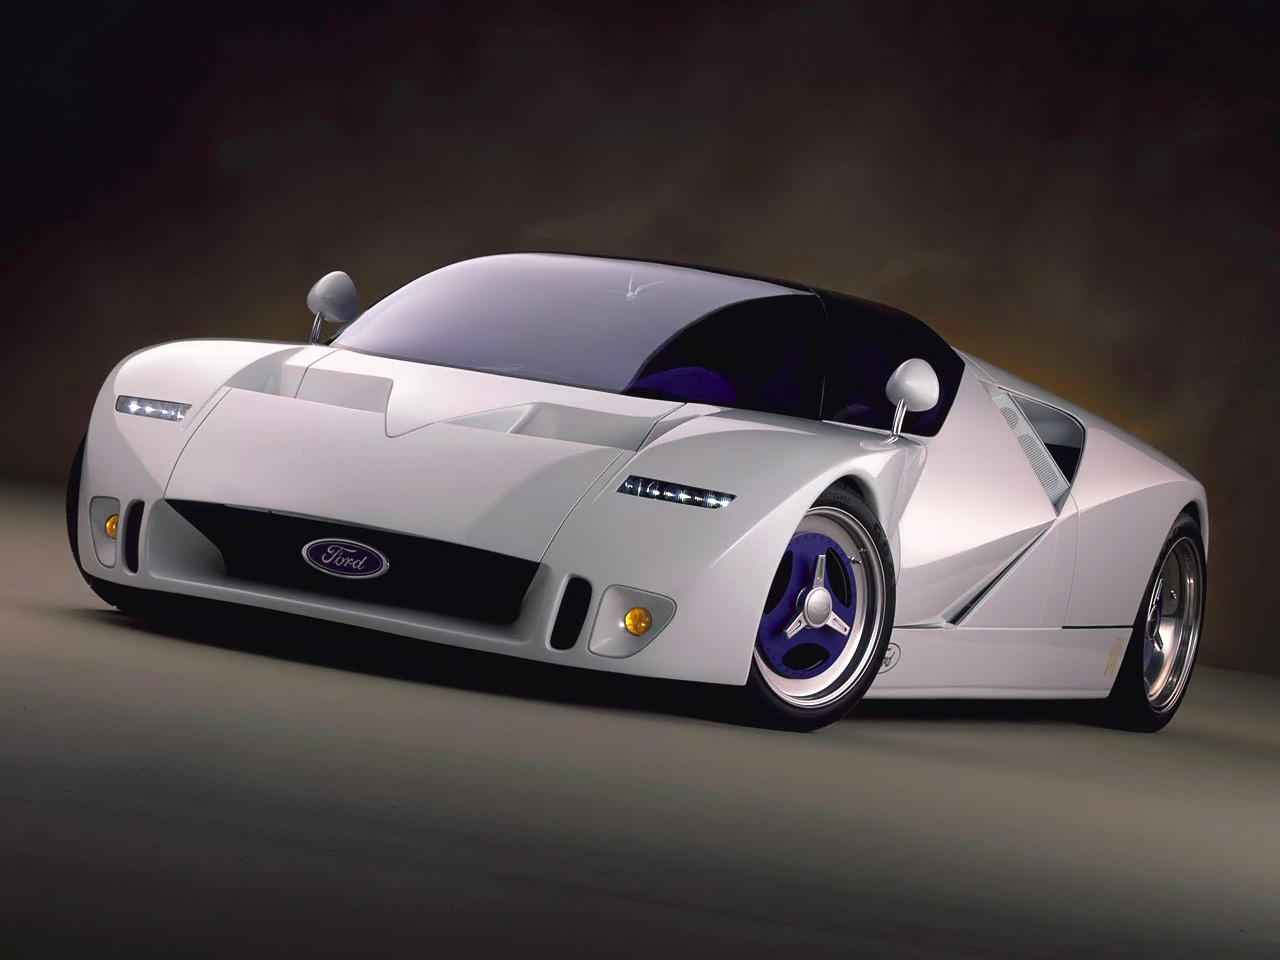 Ford Gt 2009 Wallpaper 6654 Hd Wallpapers in Cars   Imagescicom 1280x960